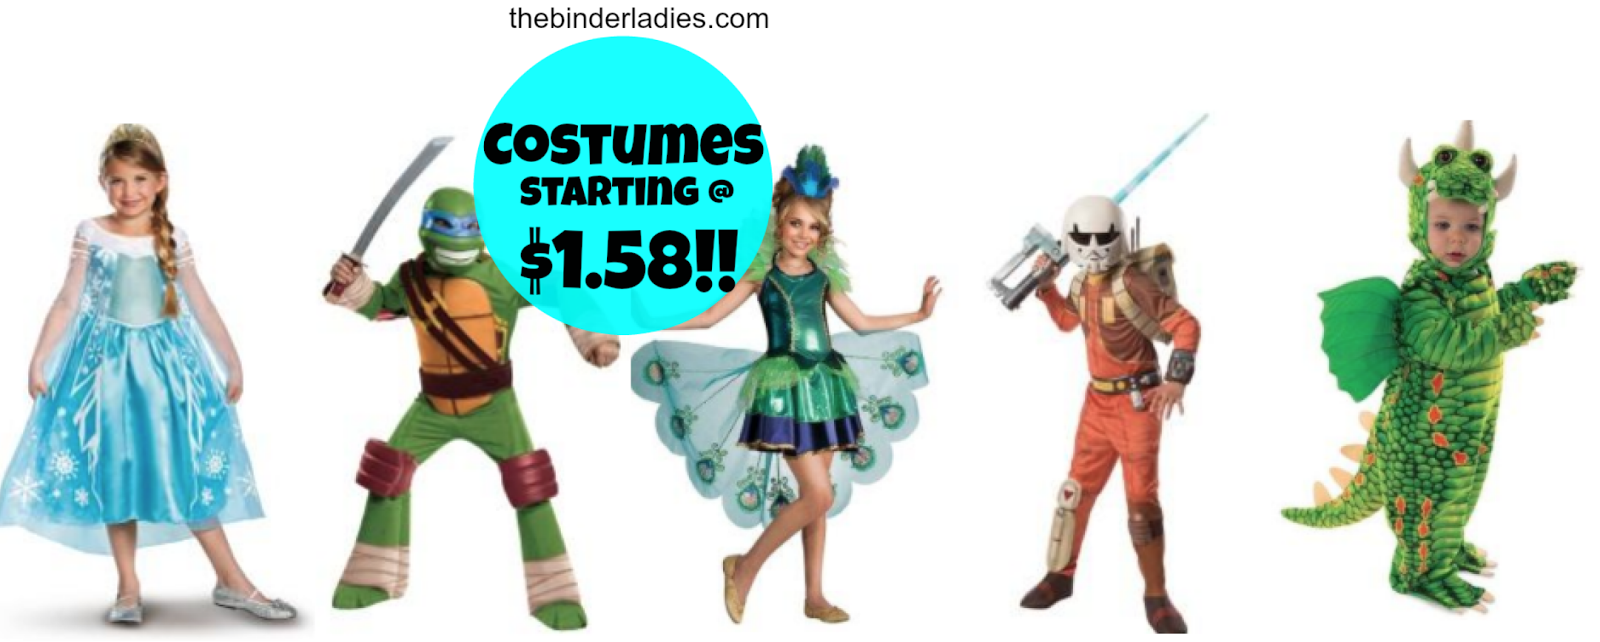 http://www.thebinderladies.com/2014/10/hot-buycostumes-20-off-costumes-prices.html#.VDgYs0vdtbw